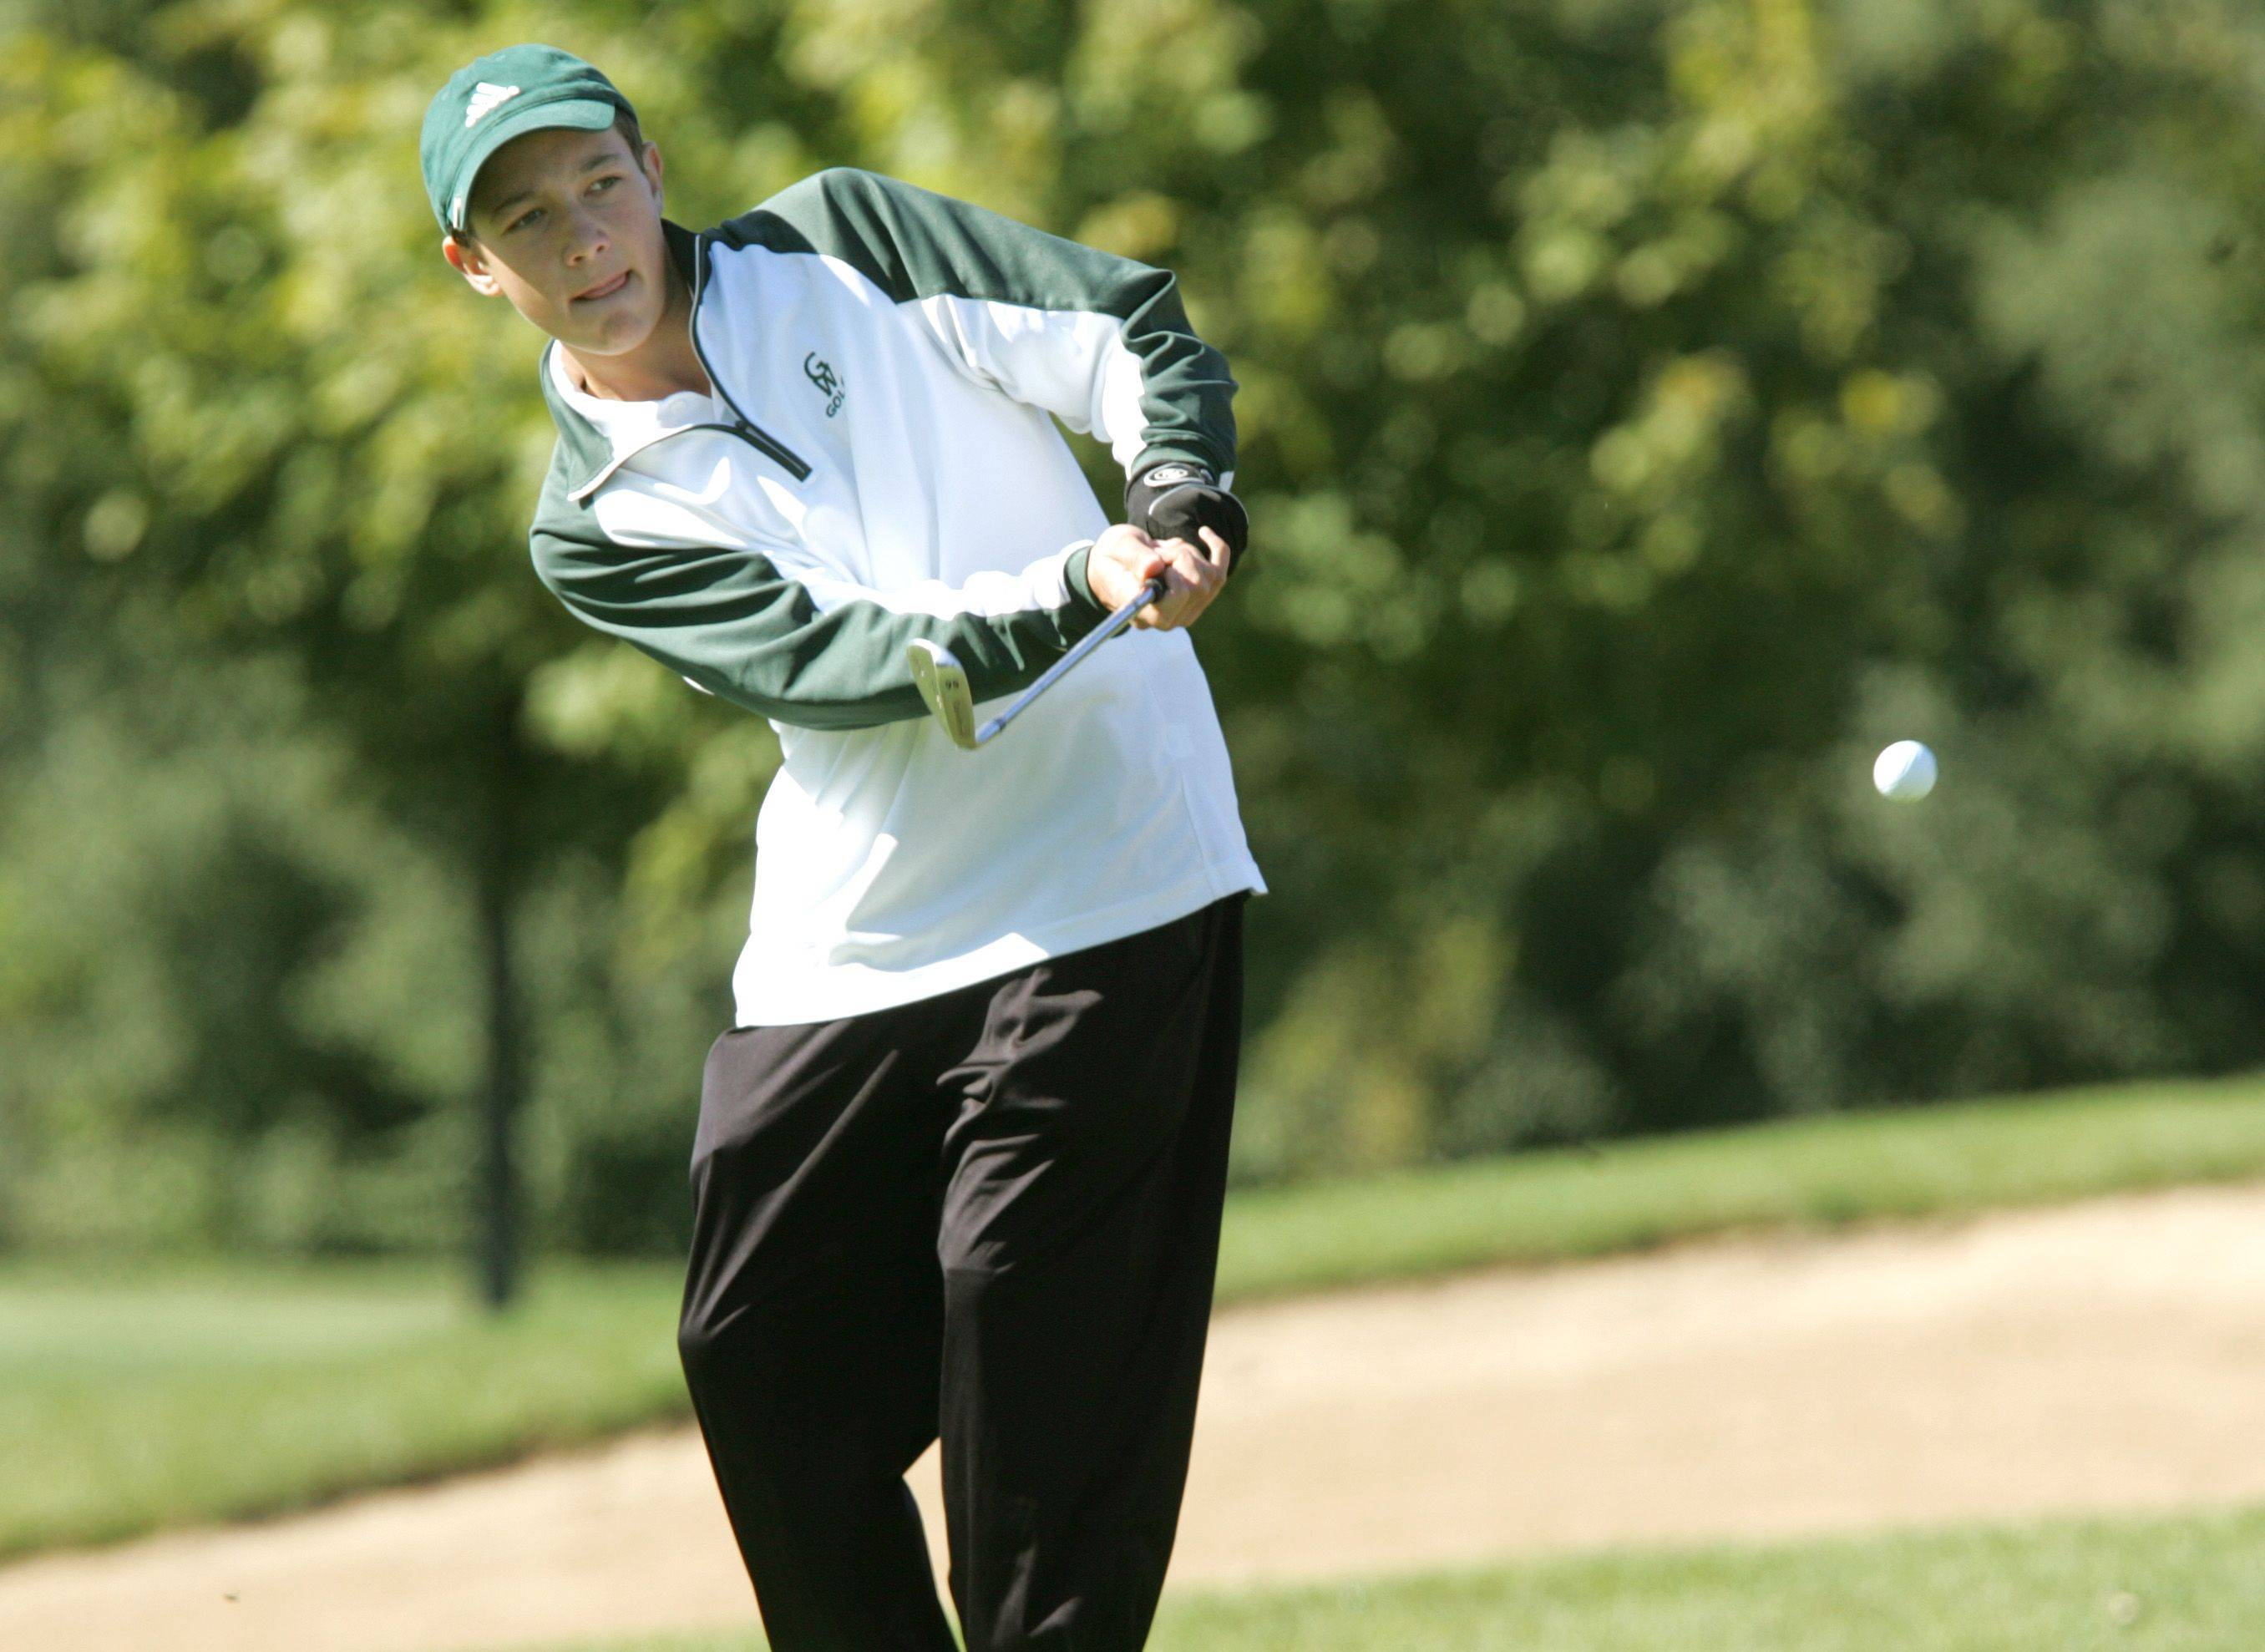 Glenbard West's Pete Norgaard hits his approach shot during the Wheaton Warrenville South boys golf regional at the Arrowhead Golf Course.